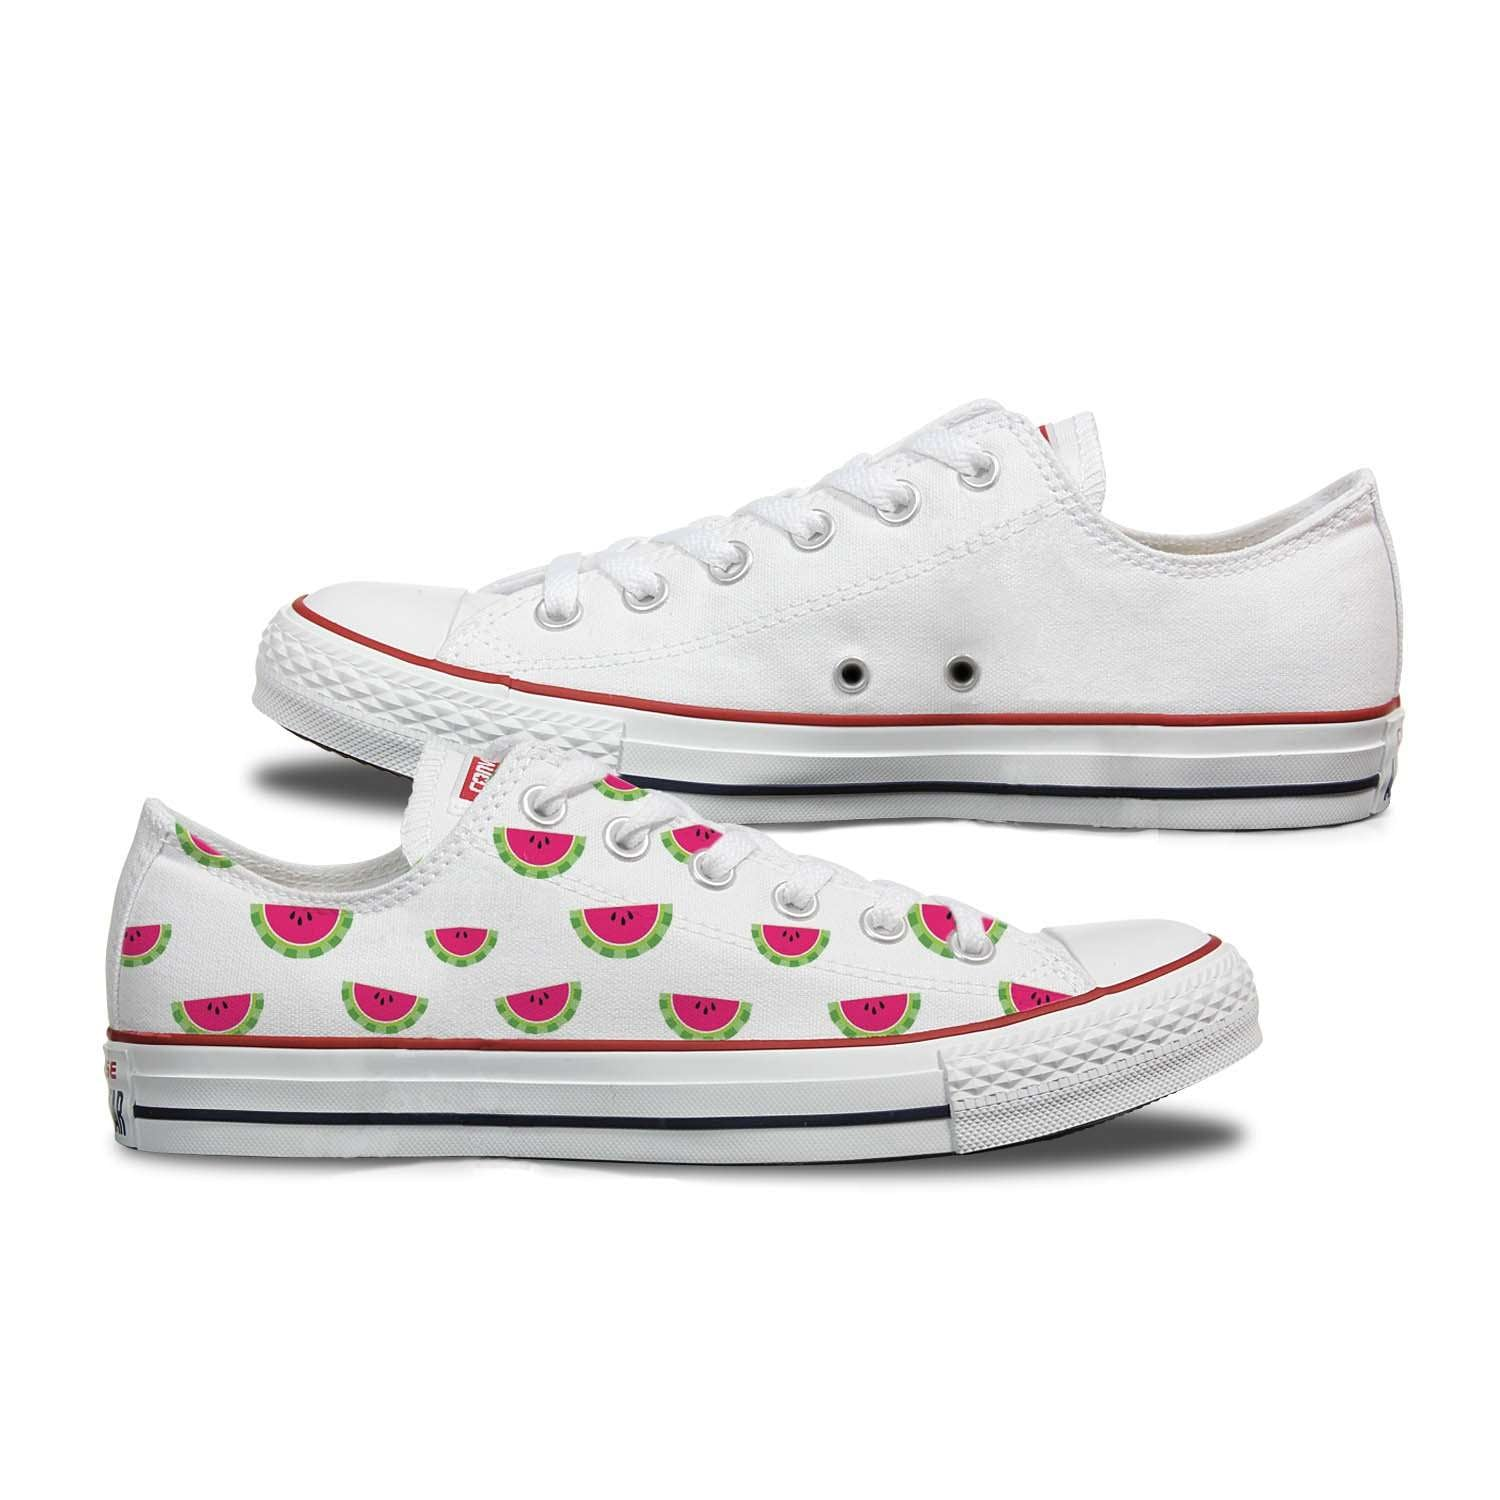 db30ad17790a Watermelon Adult Converse Low  149.00